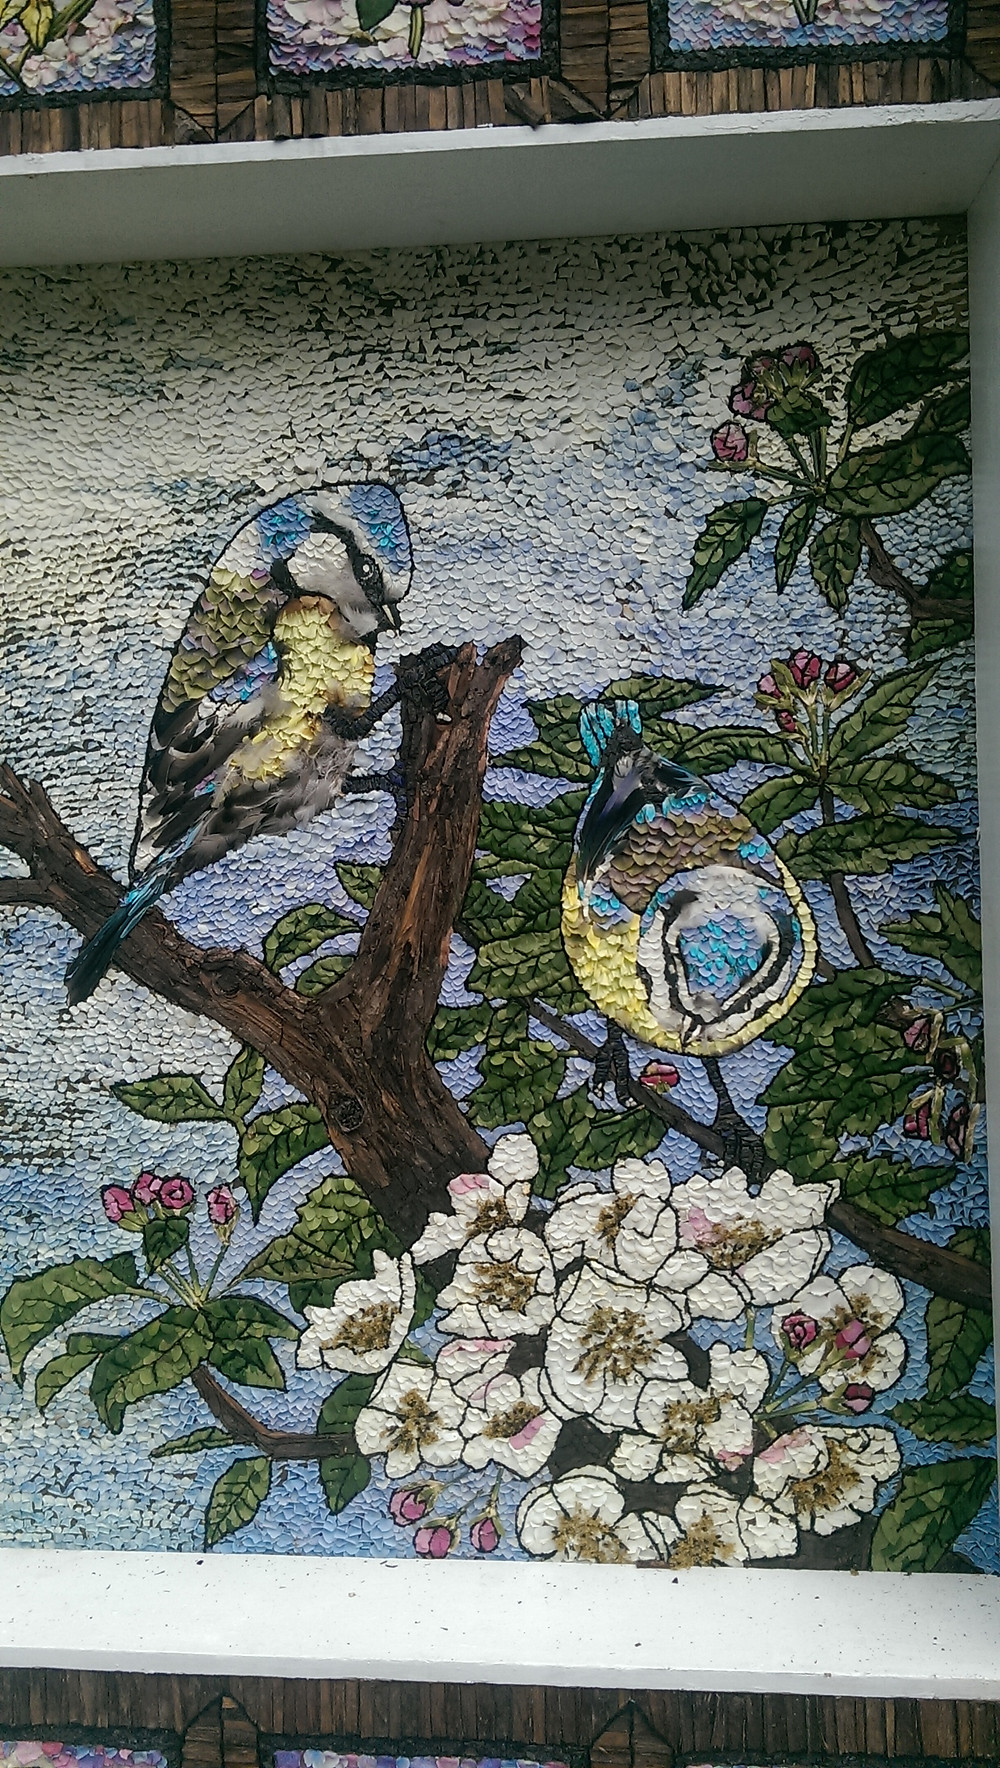 Detail of flowers and birds in Well Dressing at Stoney Middleton